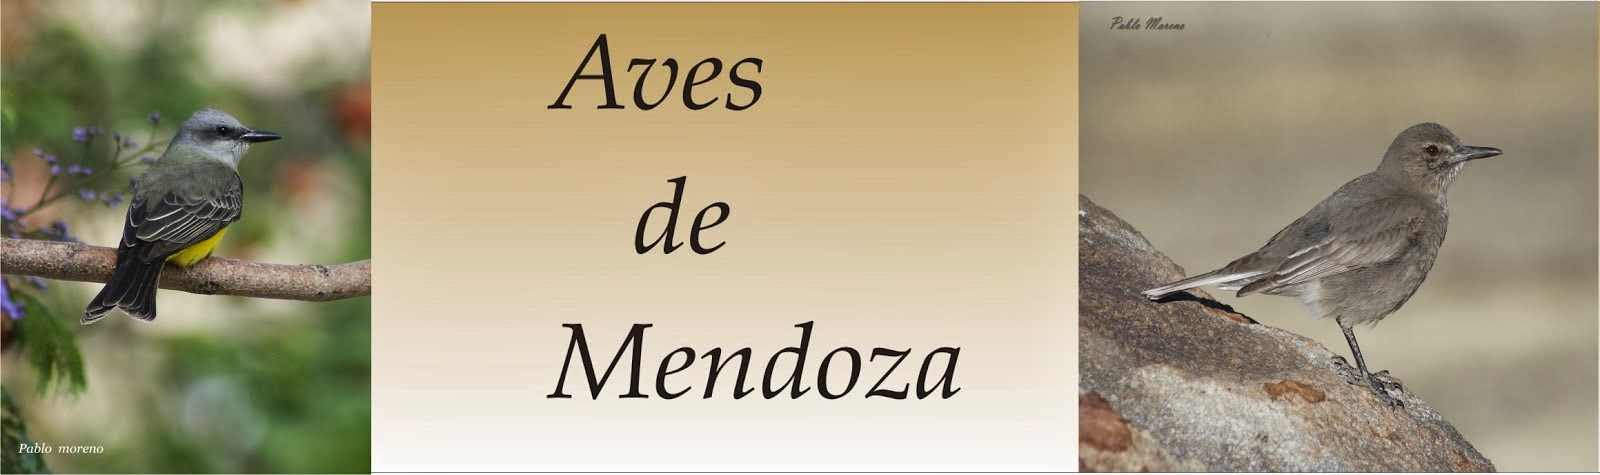 Aves de Mendoza